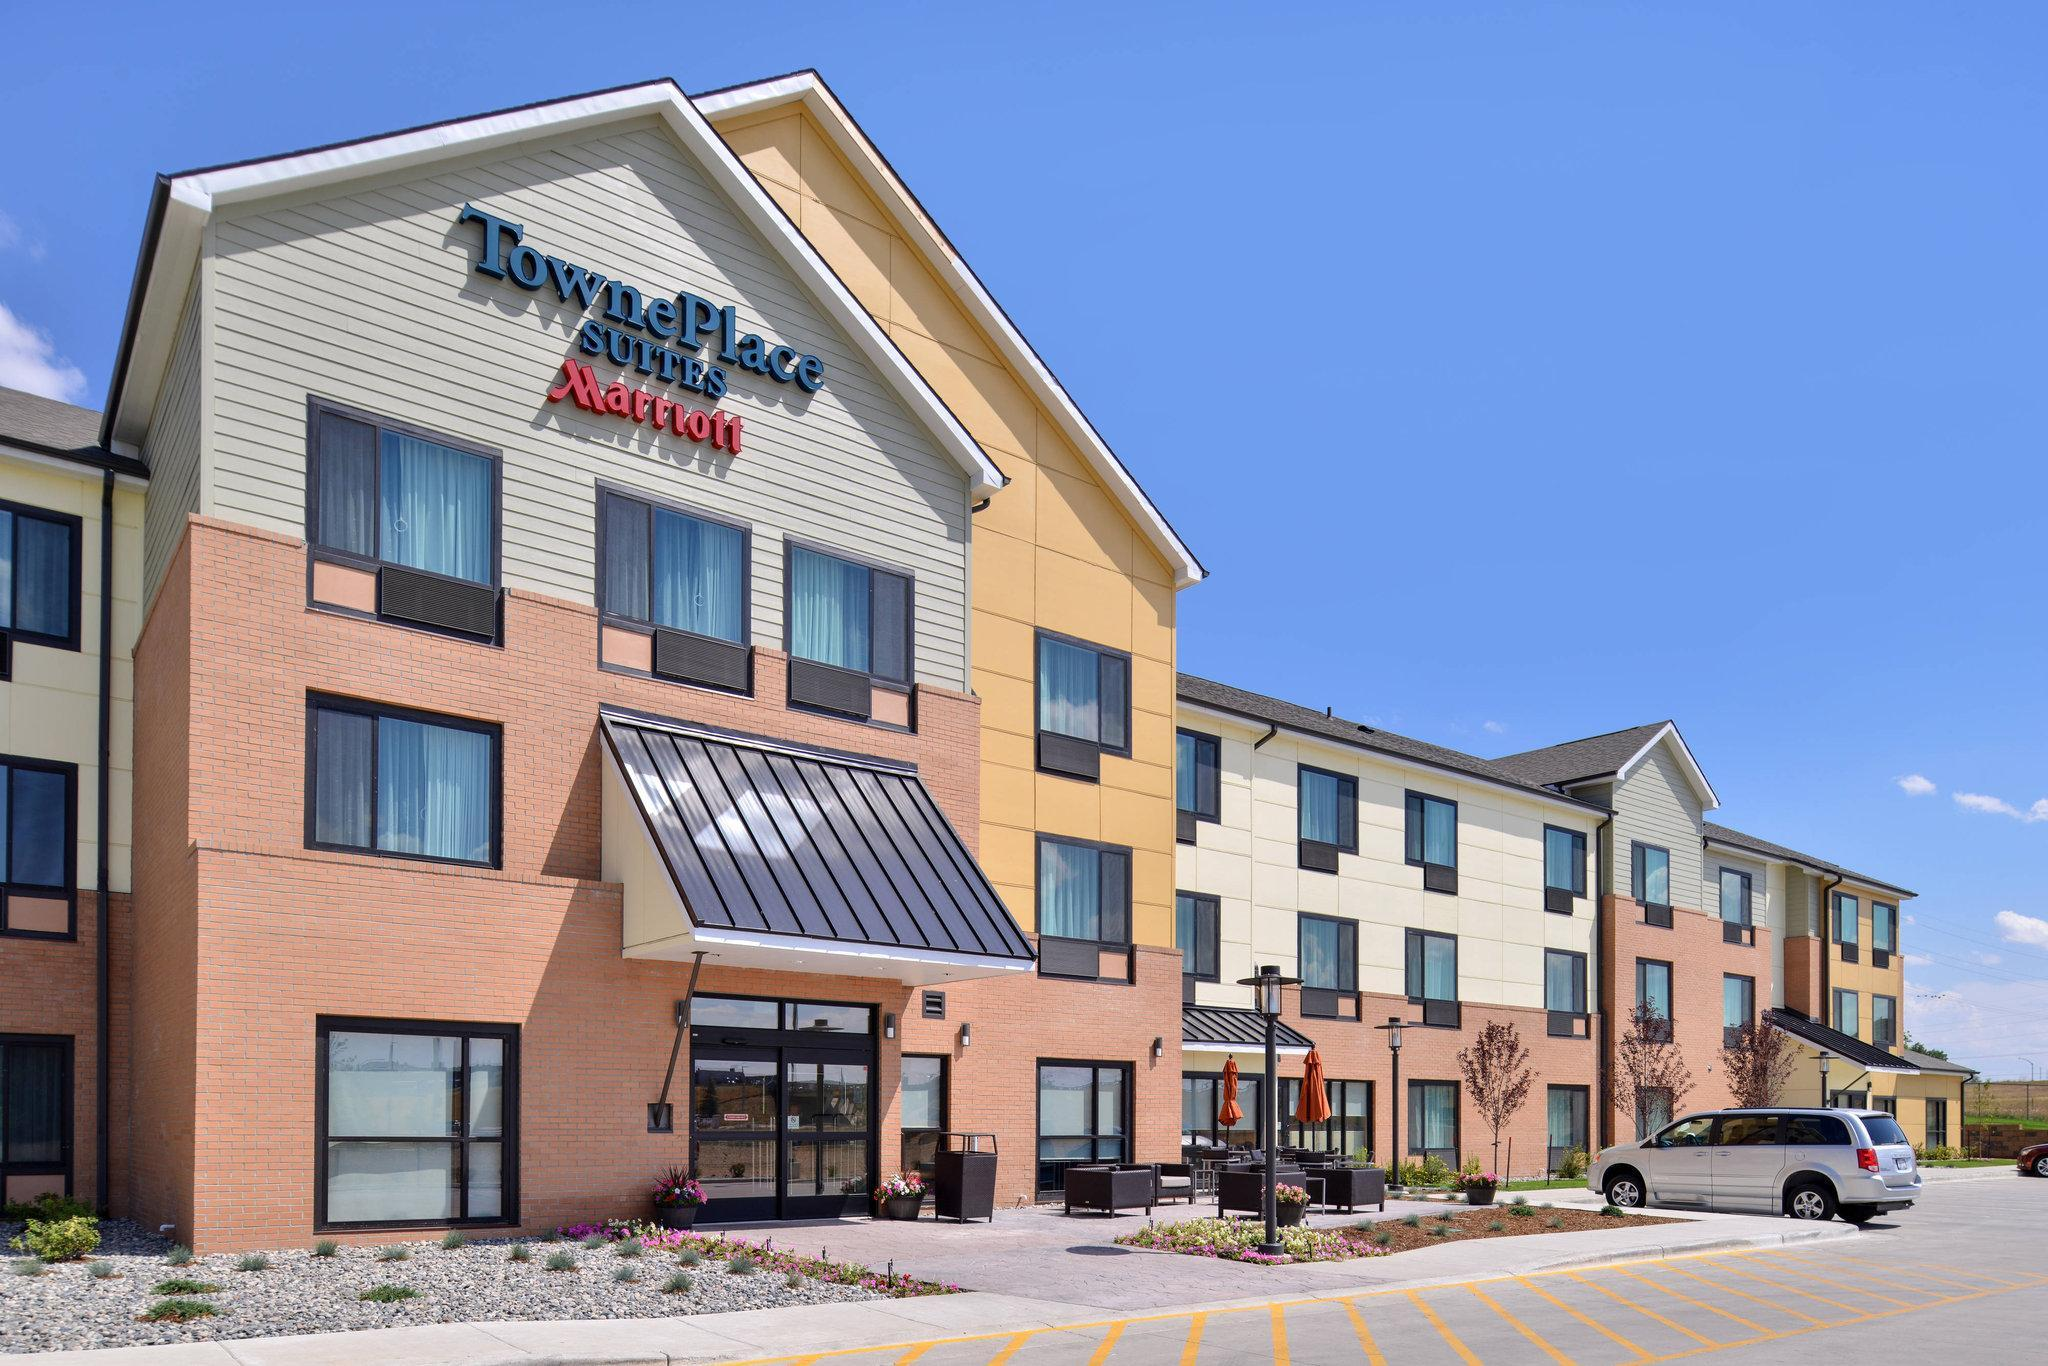 TownePlace Suites Gillette